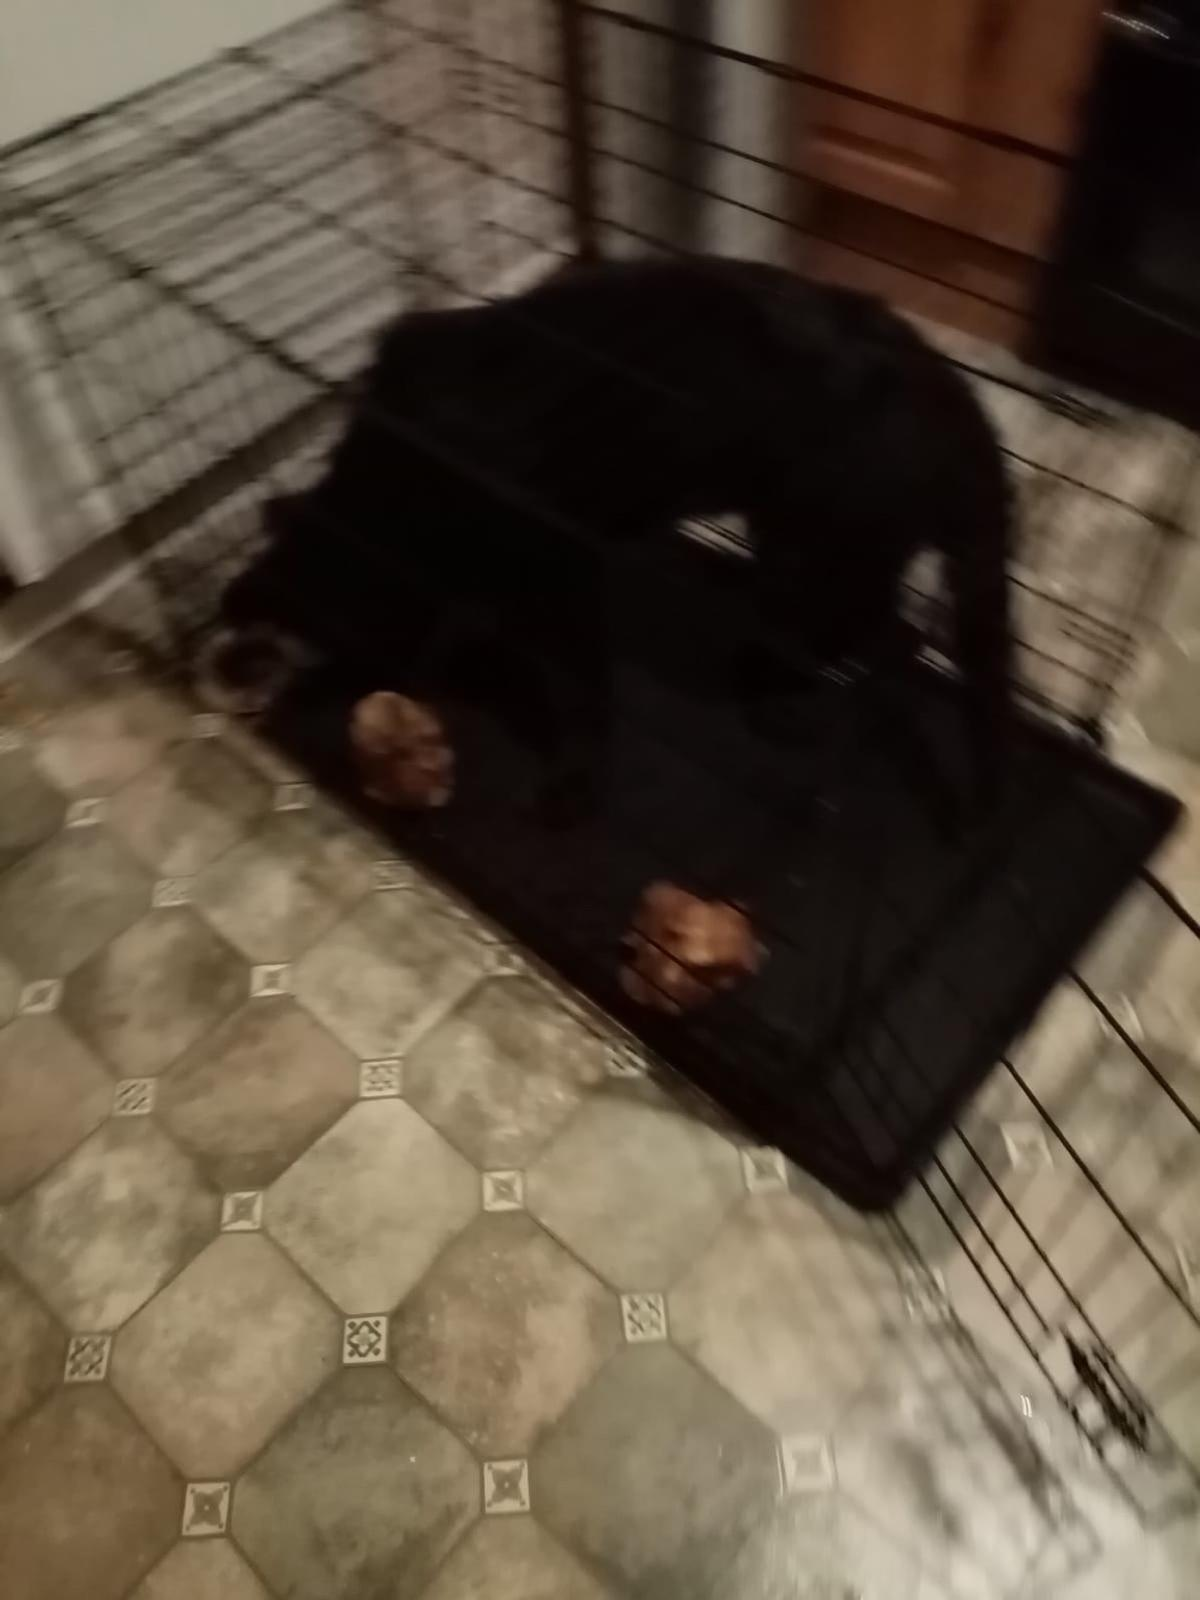 Medium sized metal dog cage .Folds away,and comes with a removable easy to clean tray . 2 locks. Bought from pets at home 3 months ago, dogs got too big for it now.